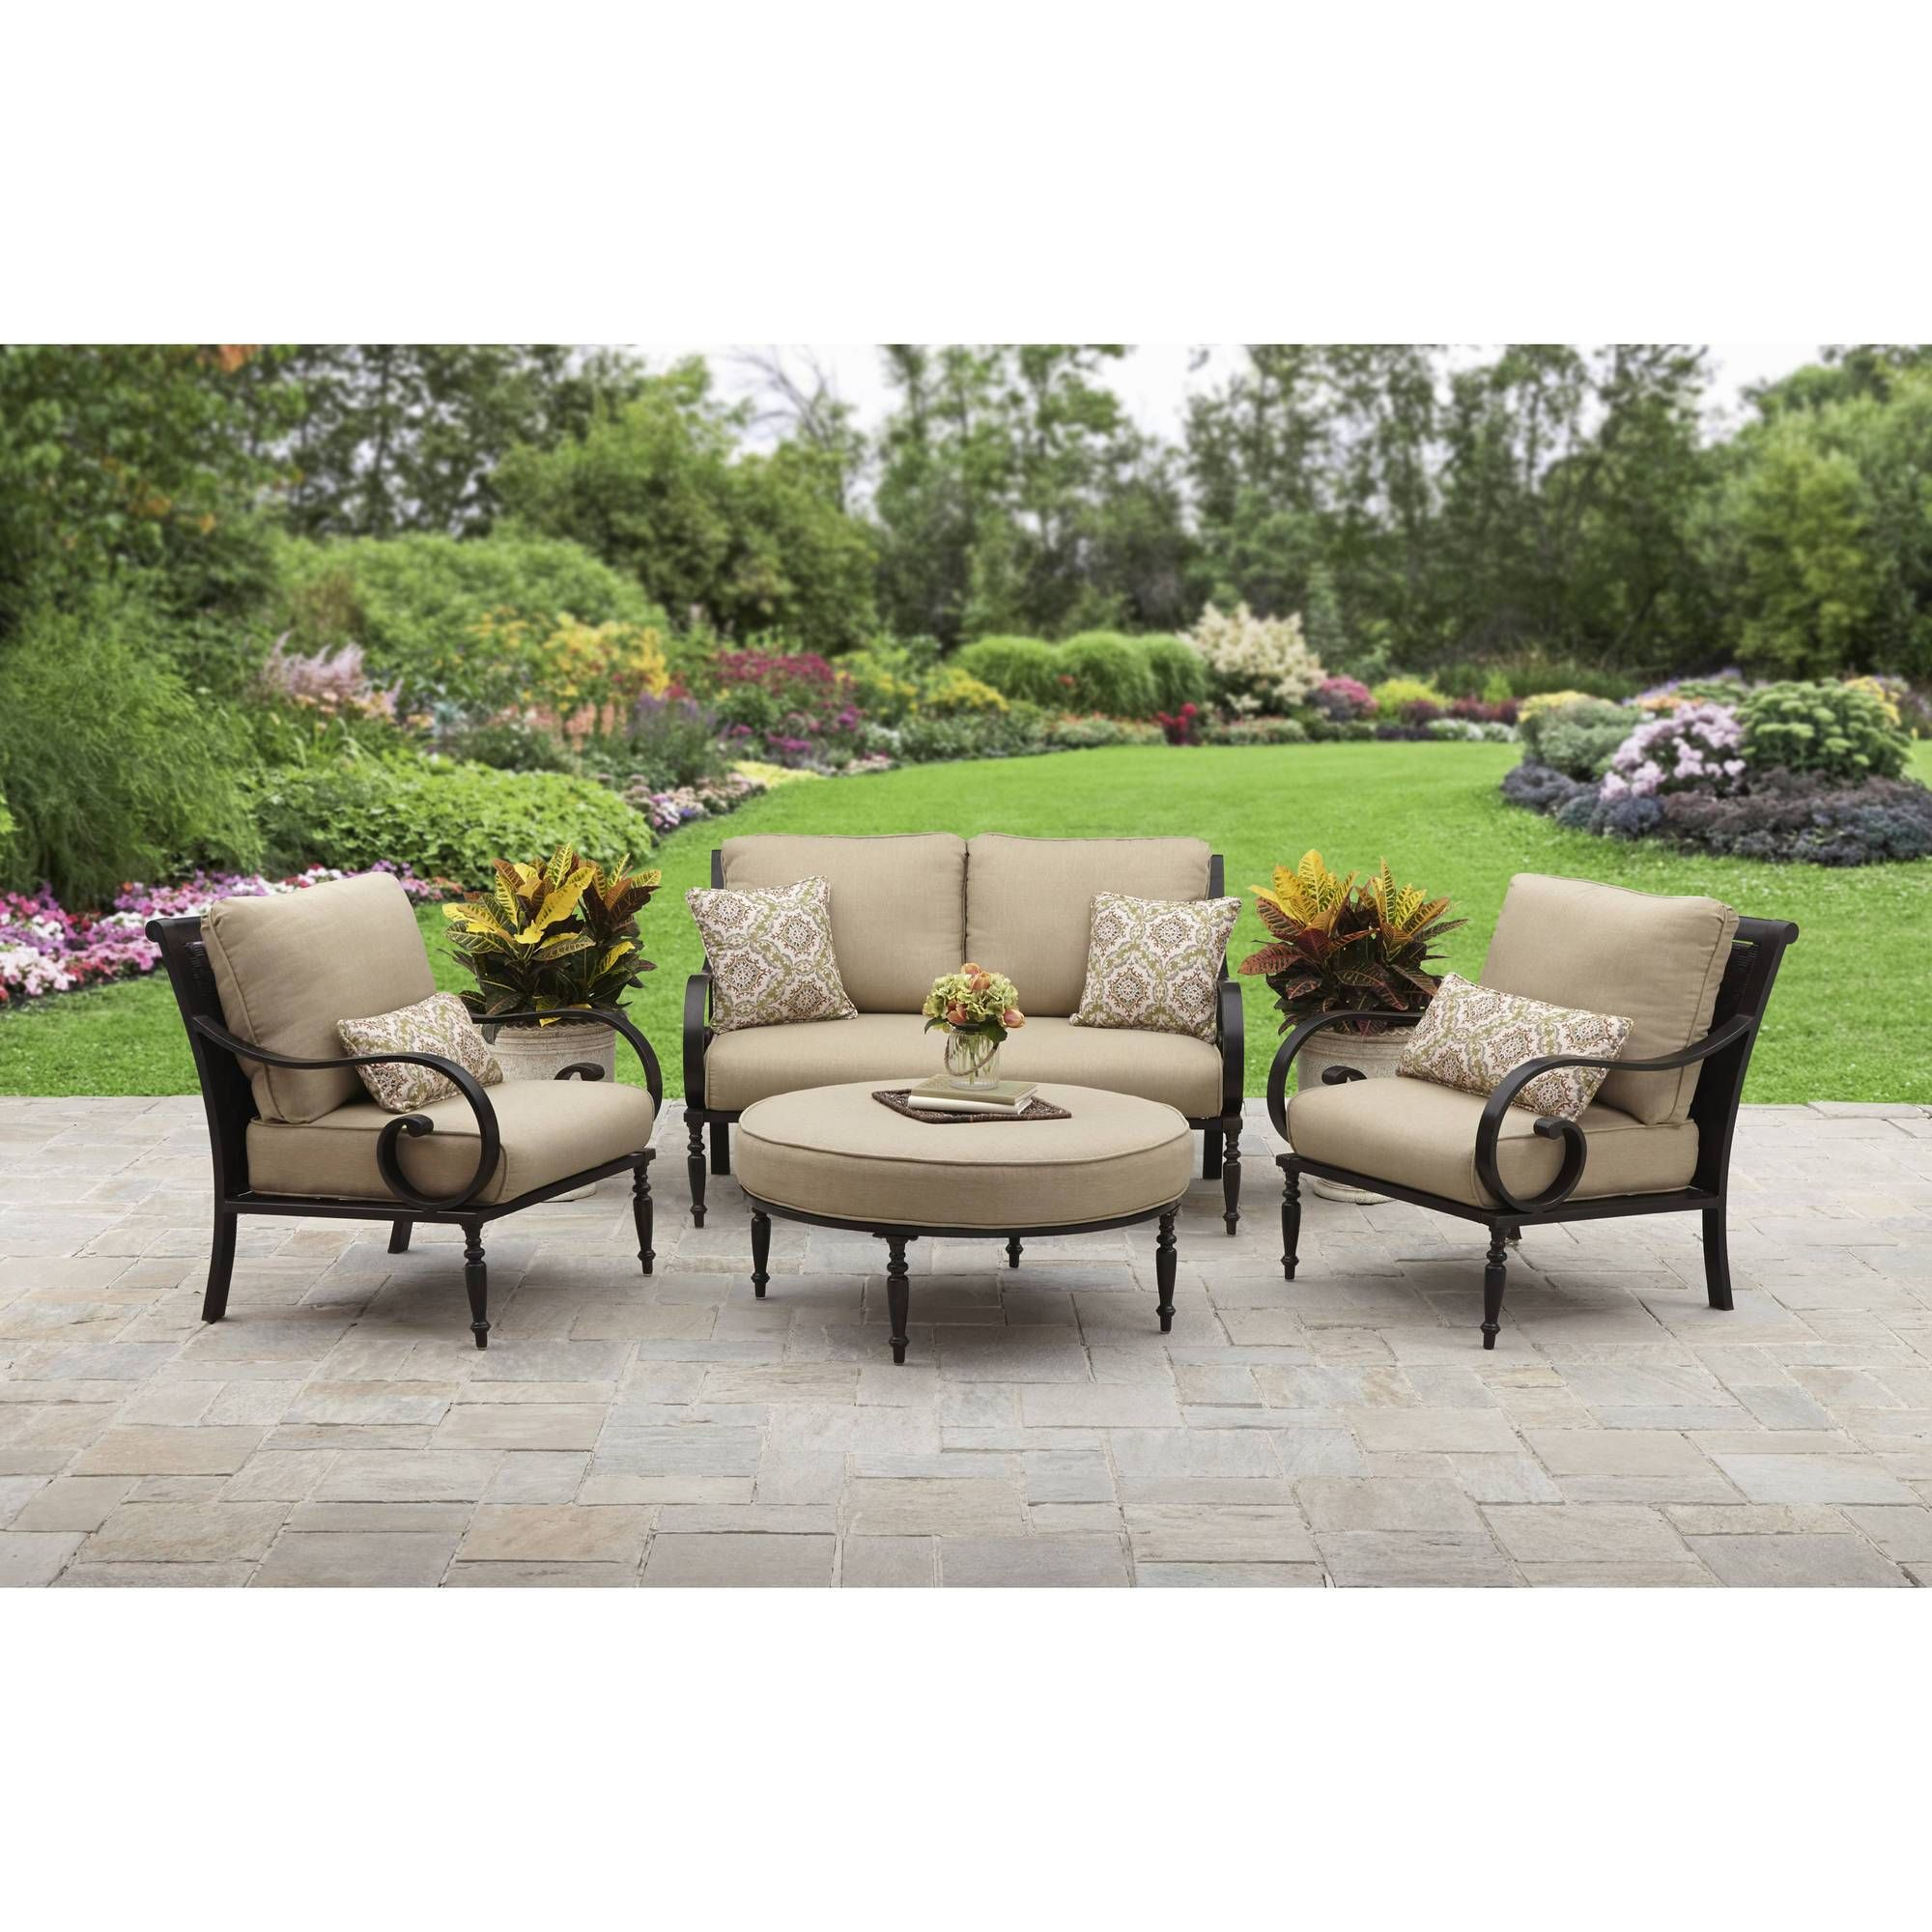 Homes Englewood Fine Dining Outdoor Patio Set